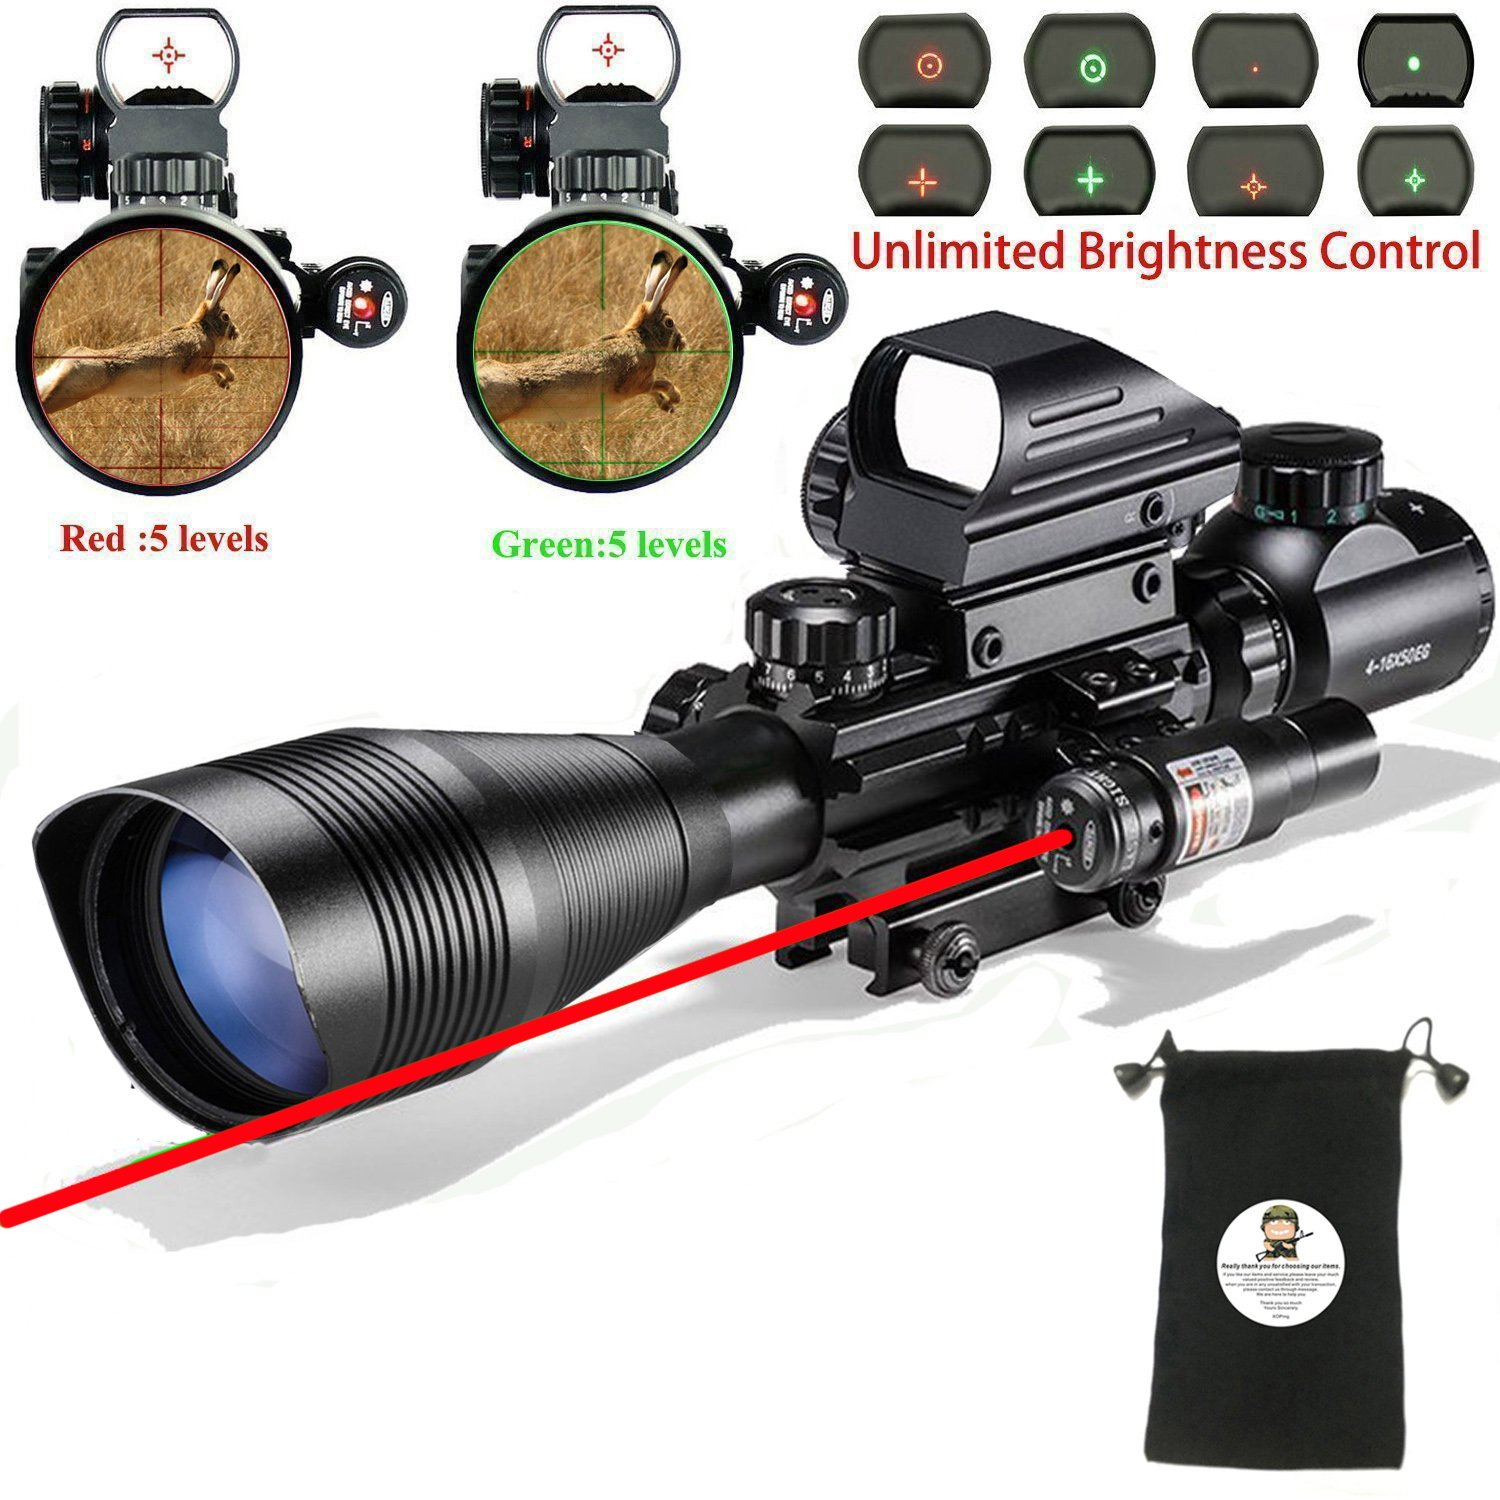 AR15 Tactical Rifle Scope C4-12x50EG 3 in 1 Hunting Dual Illuminated with Red Laser Sight and 4 Holographic Reticle Red and Green Dot Sight for 22&11mm Weaver/Picatinny Rail Mount (4-12x50EG)